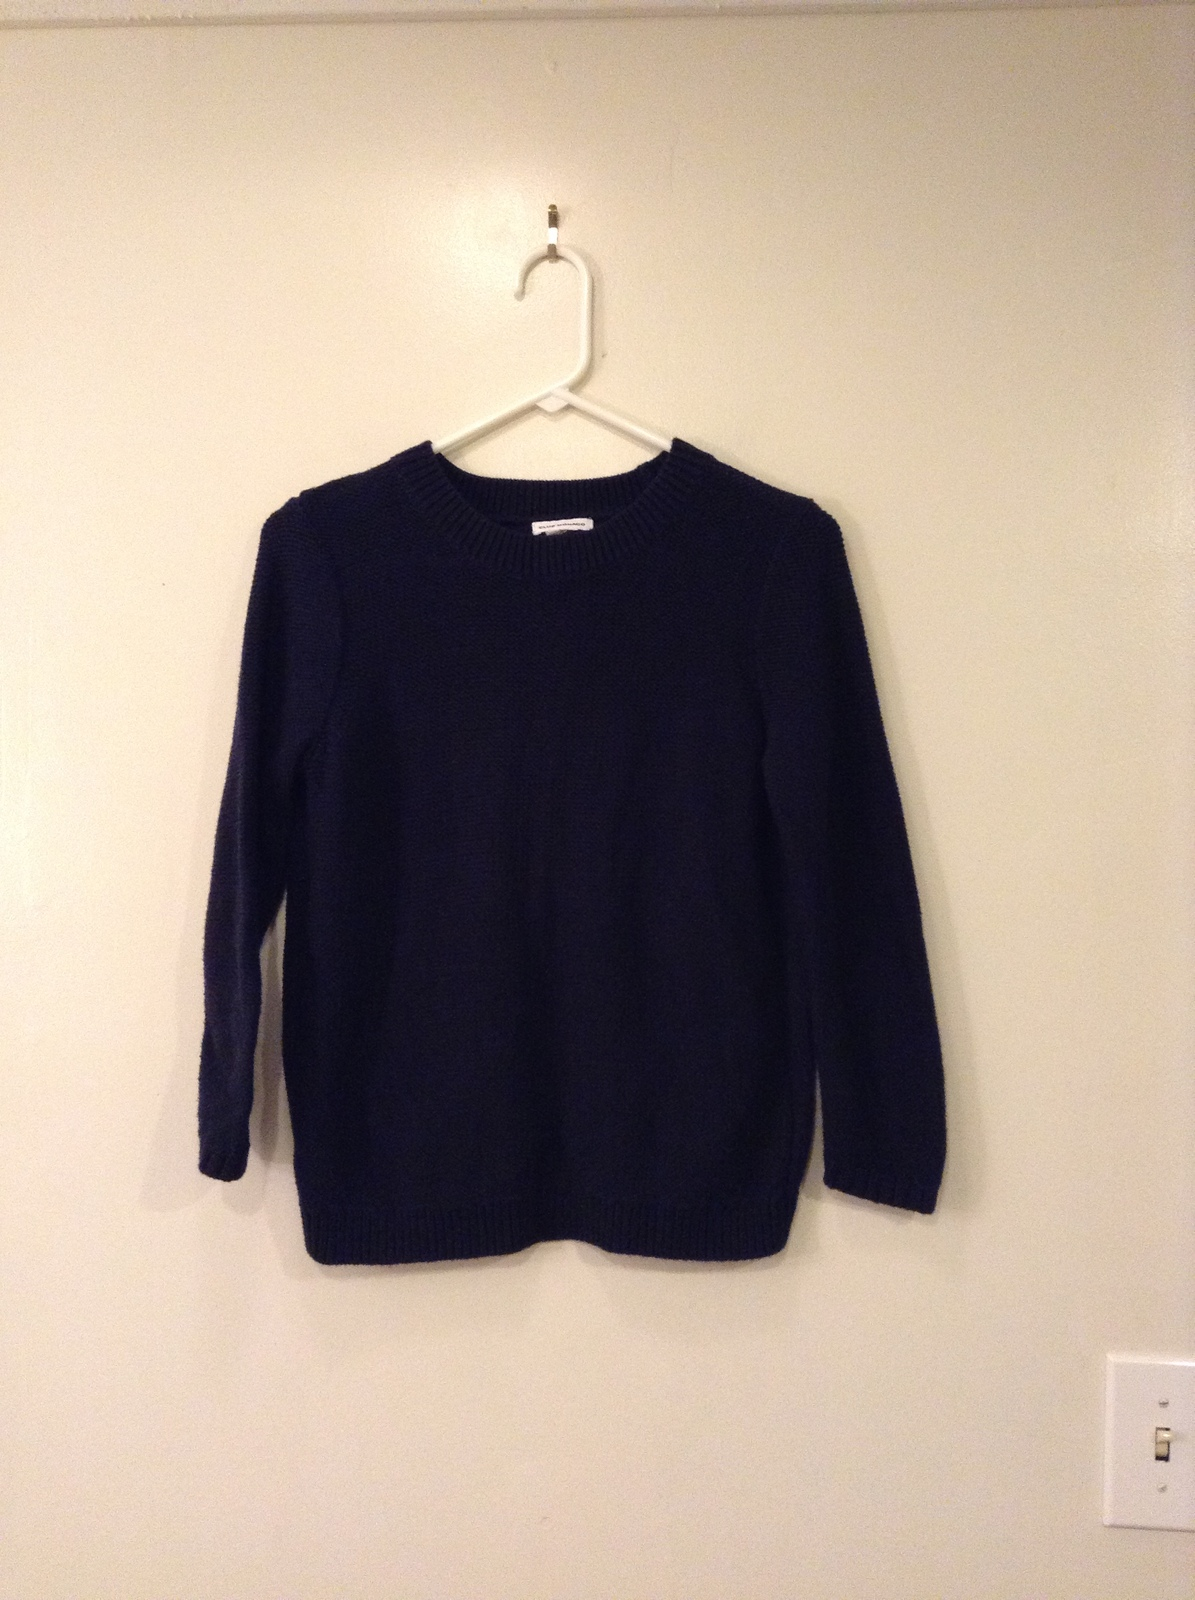 Club Monaco Navy Blue Open Swing Back Cotton 3/4 sleeve Sweater, size S